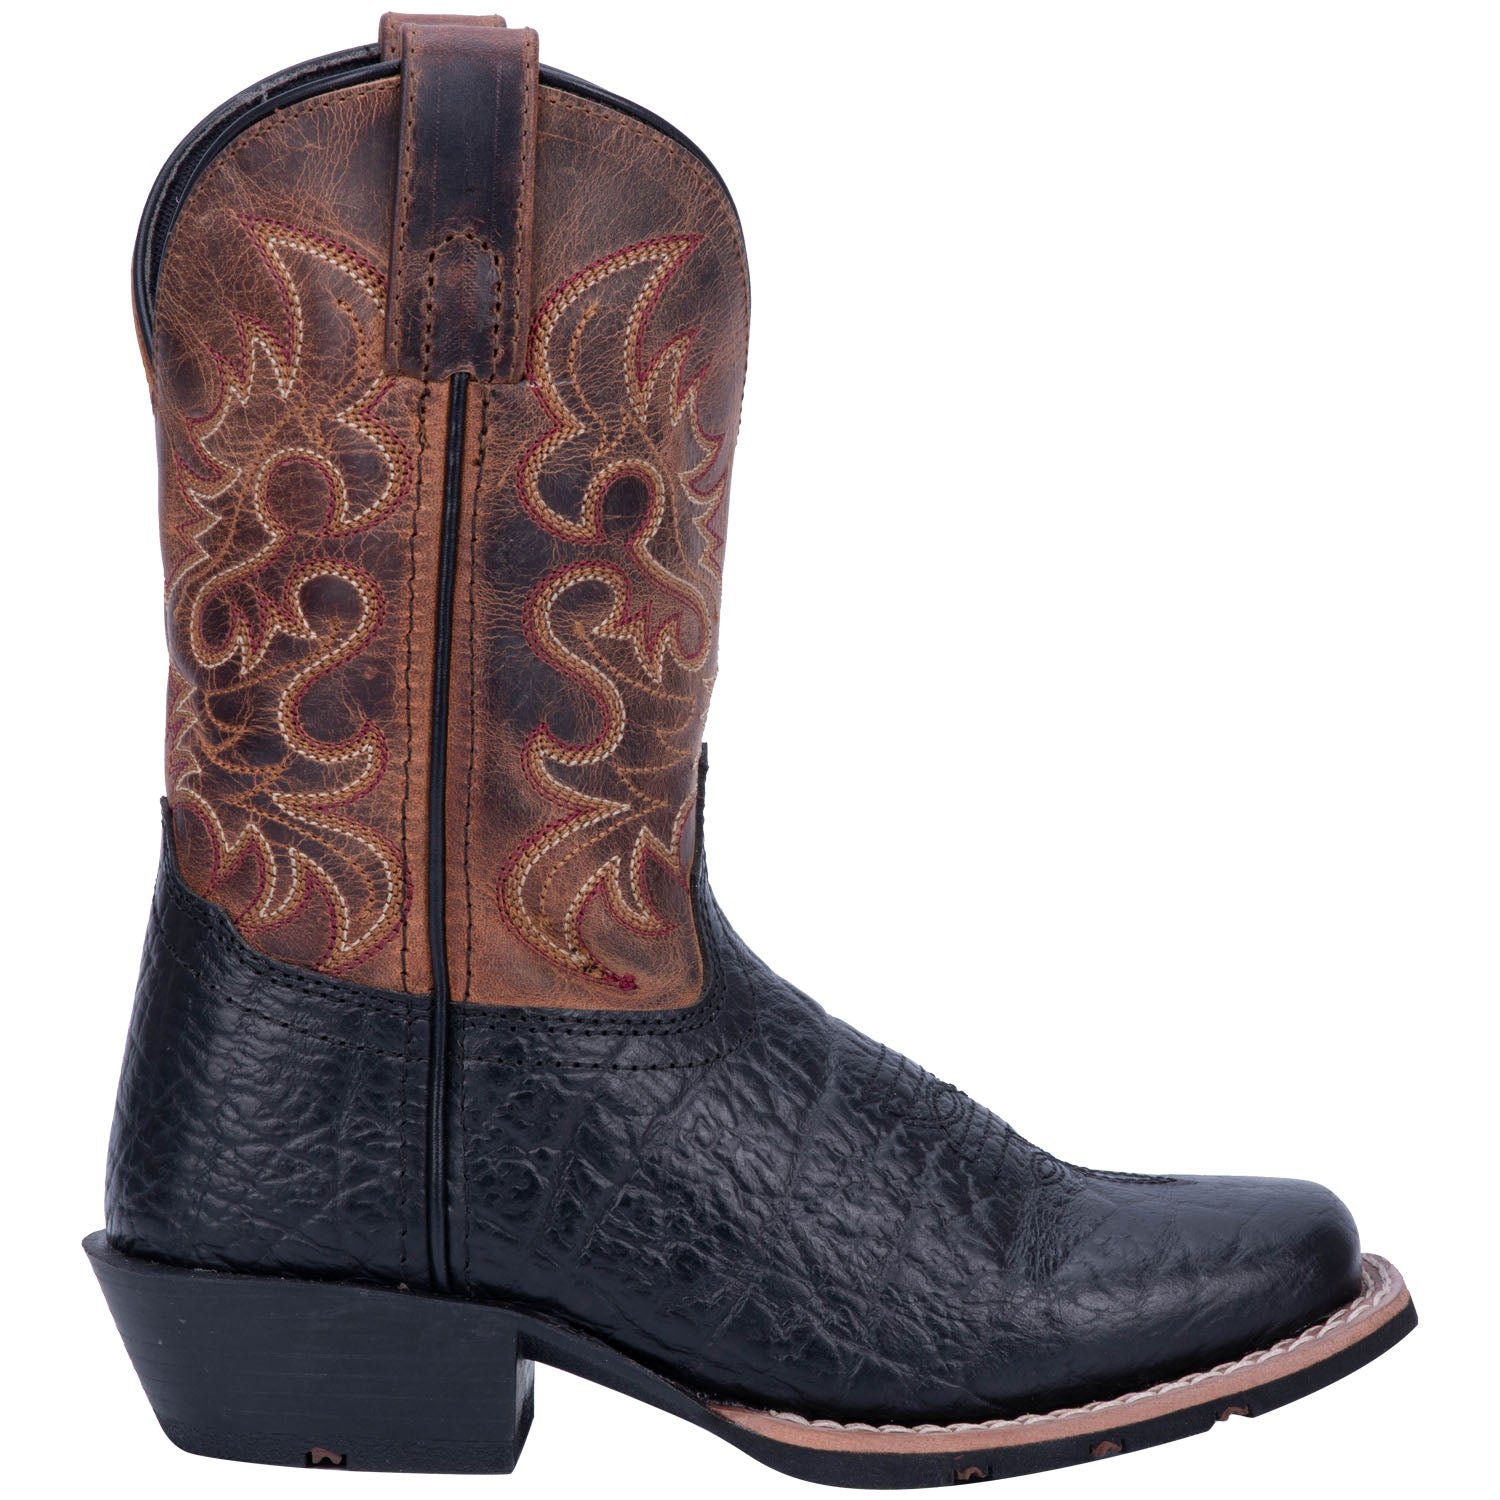 LITTLE RIVER LEATHER YOUTH BOOT 4253843390506